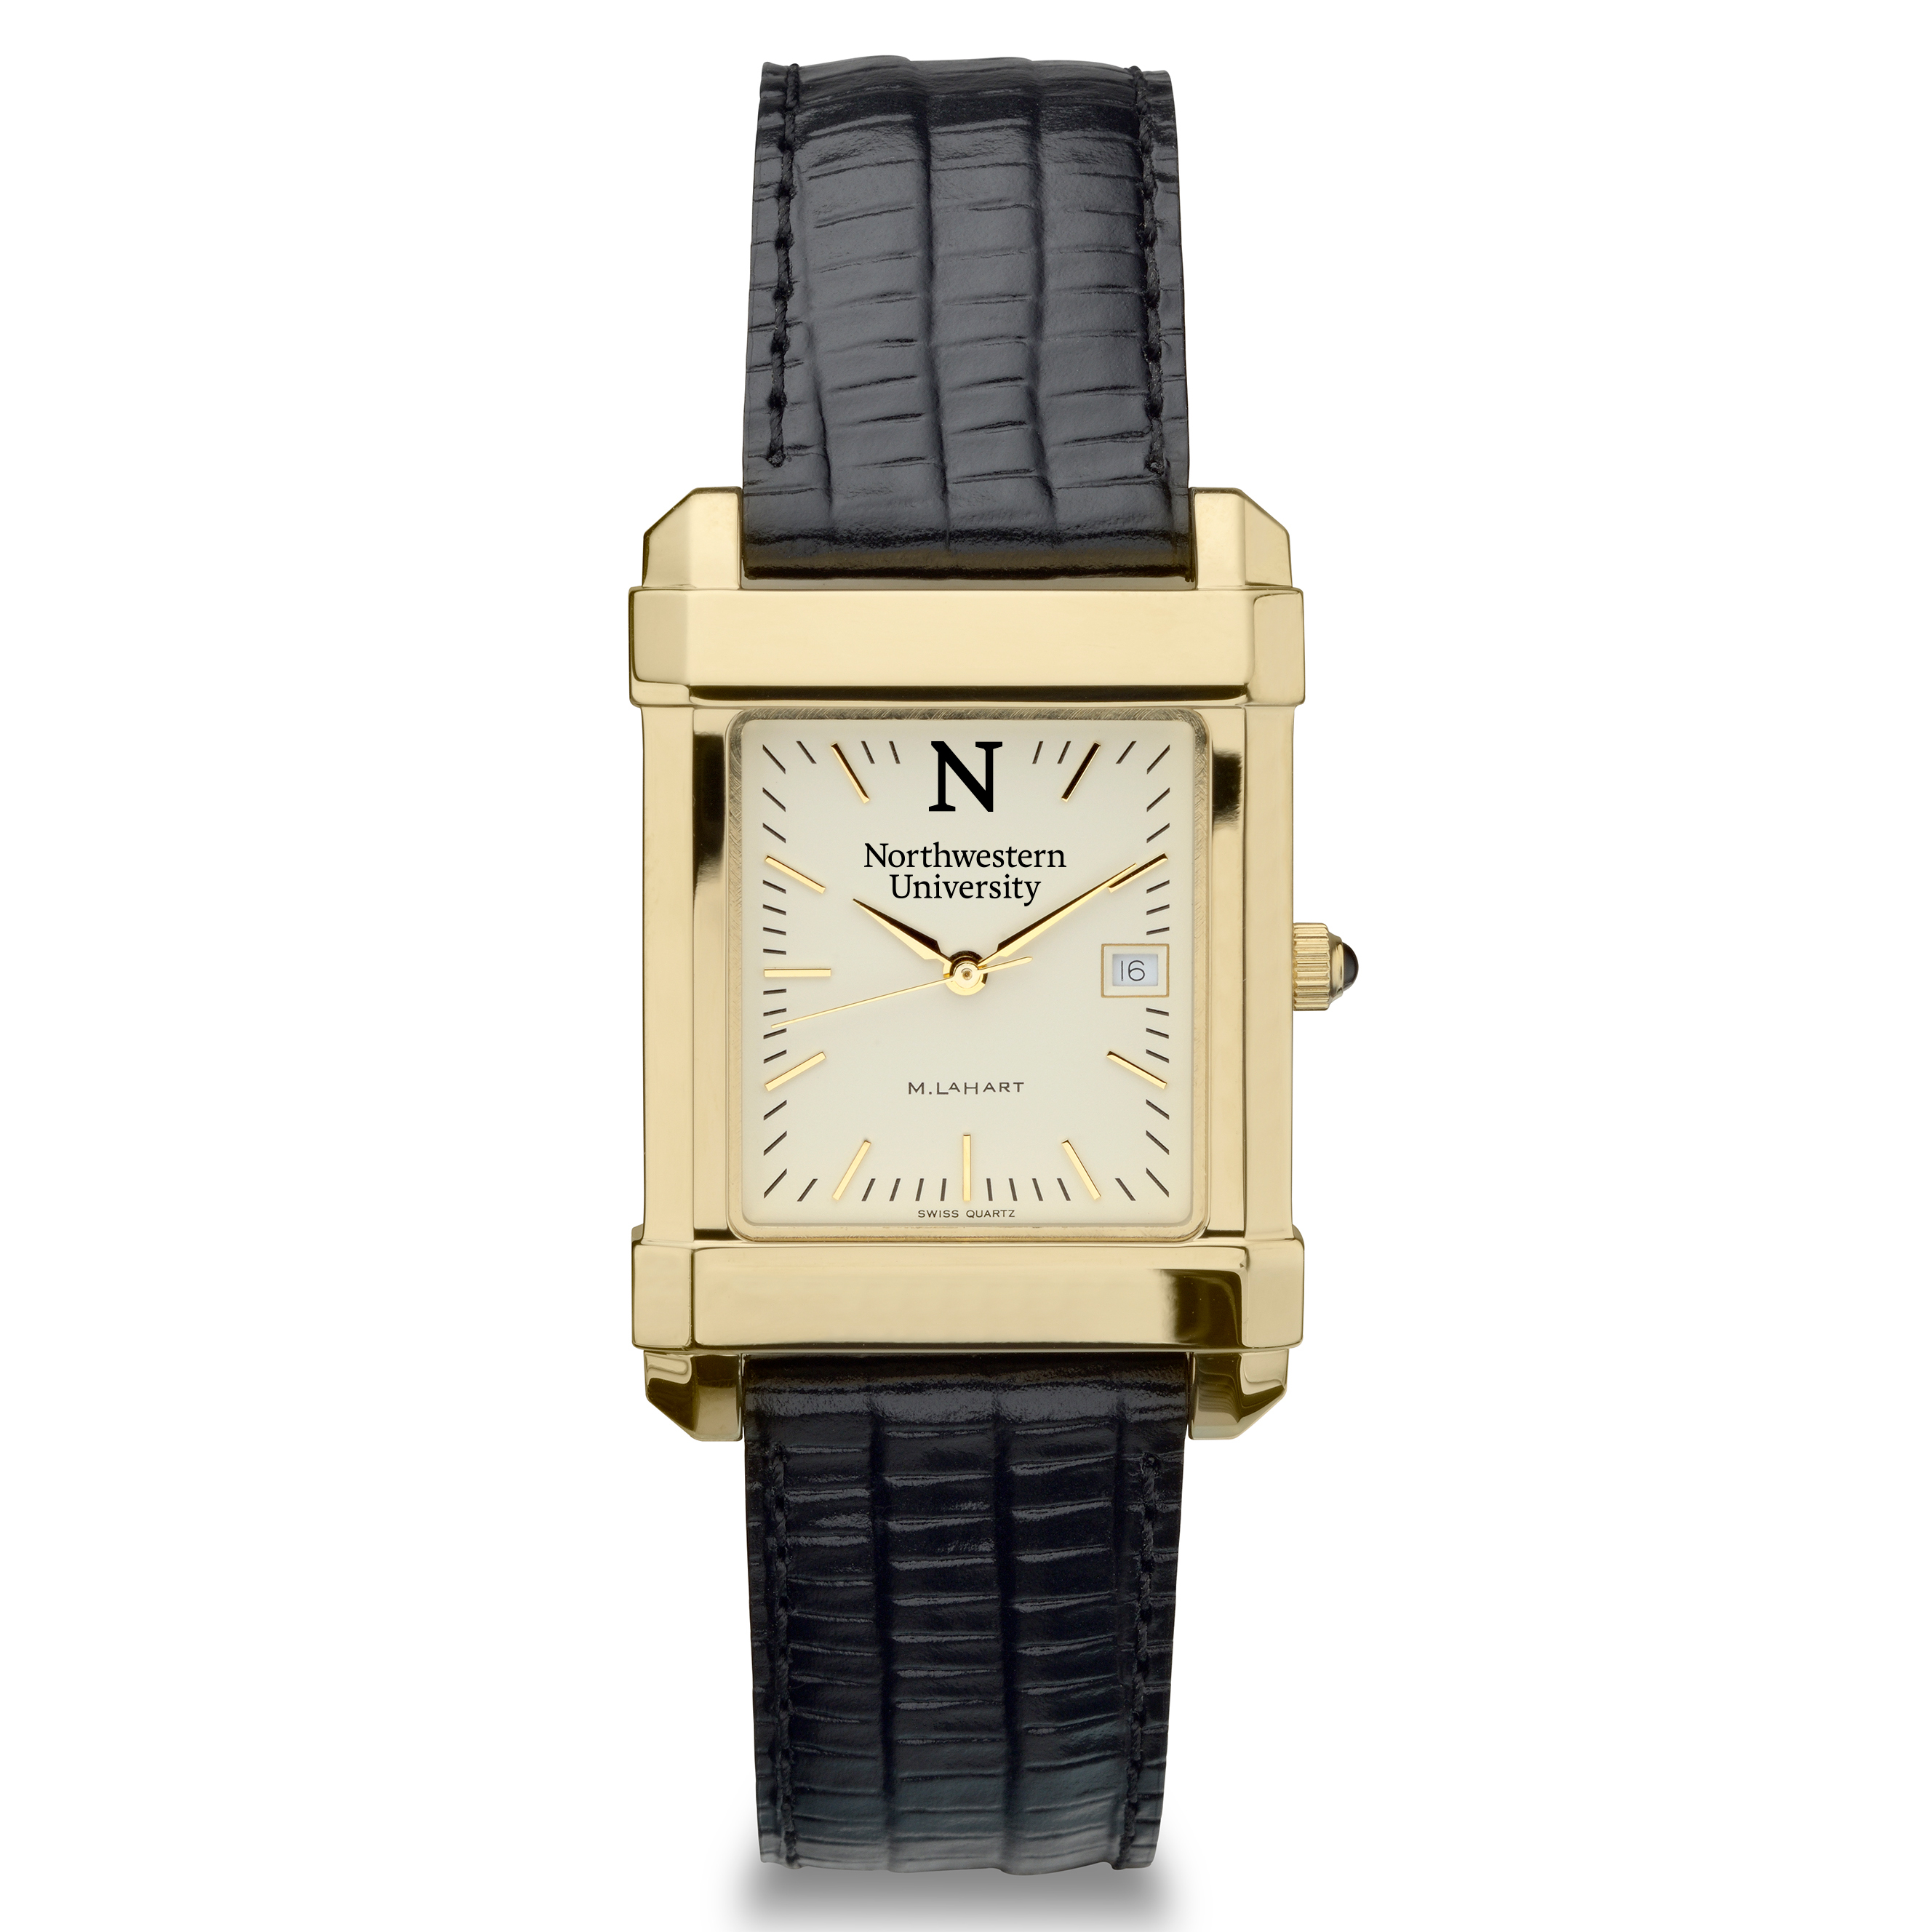 Northwestern Men's Gold Quad Watch with Leather Strap - Image 2